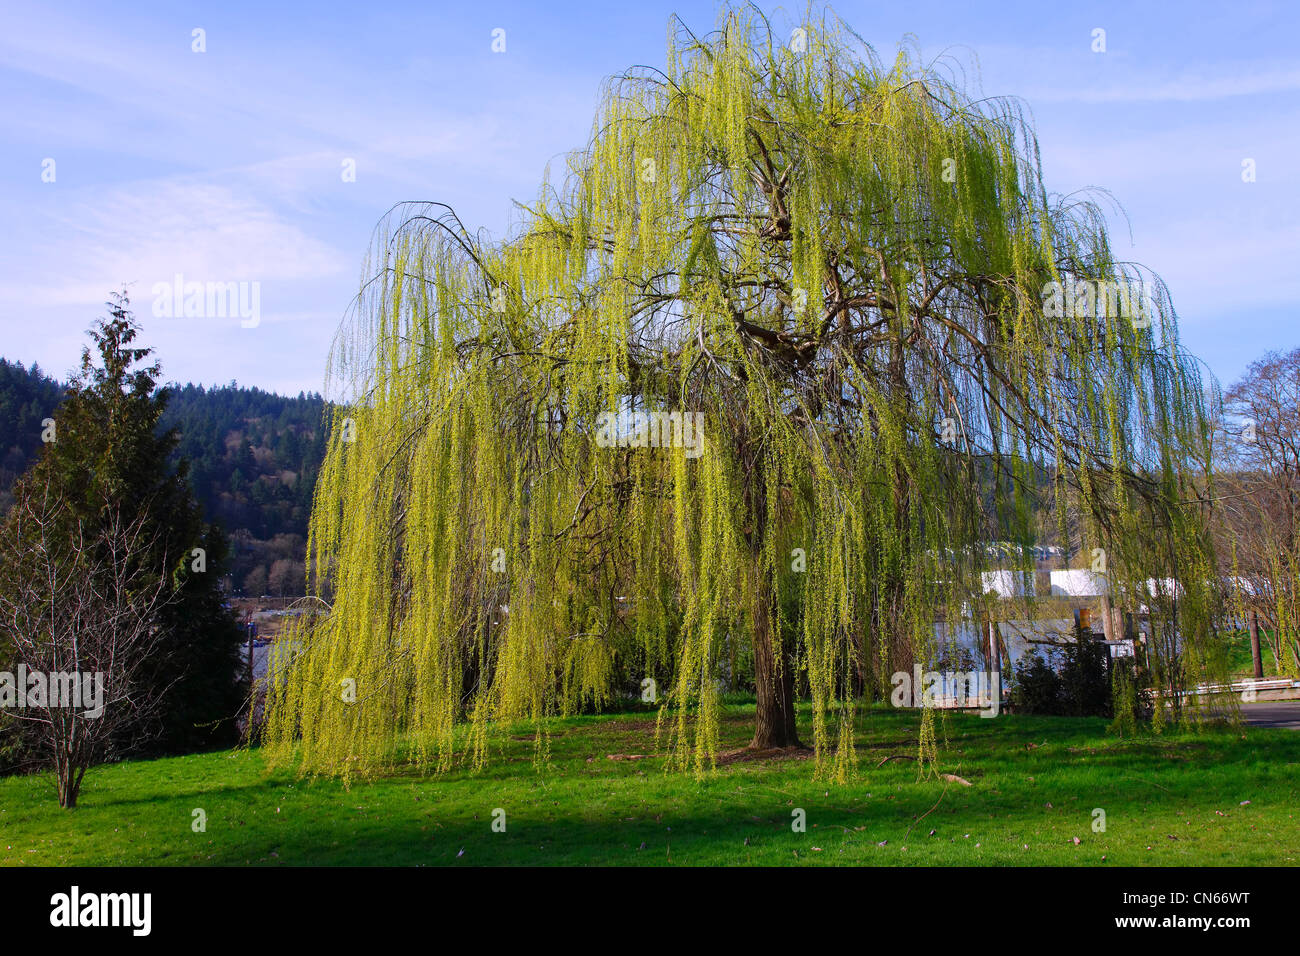 Weeping Willow tree in a park. Stock Photo